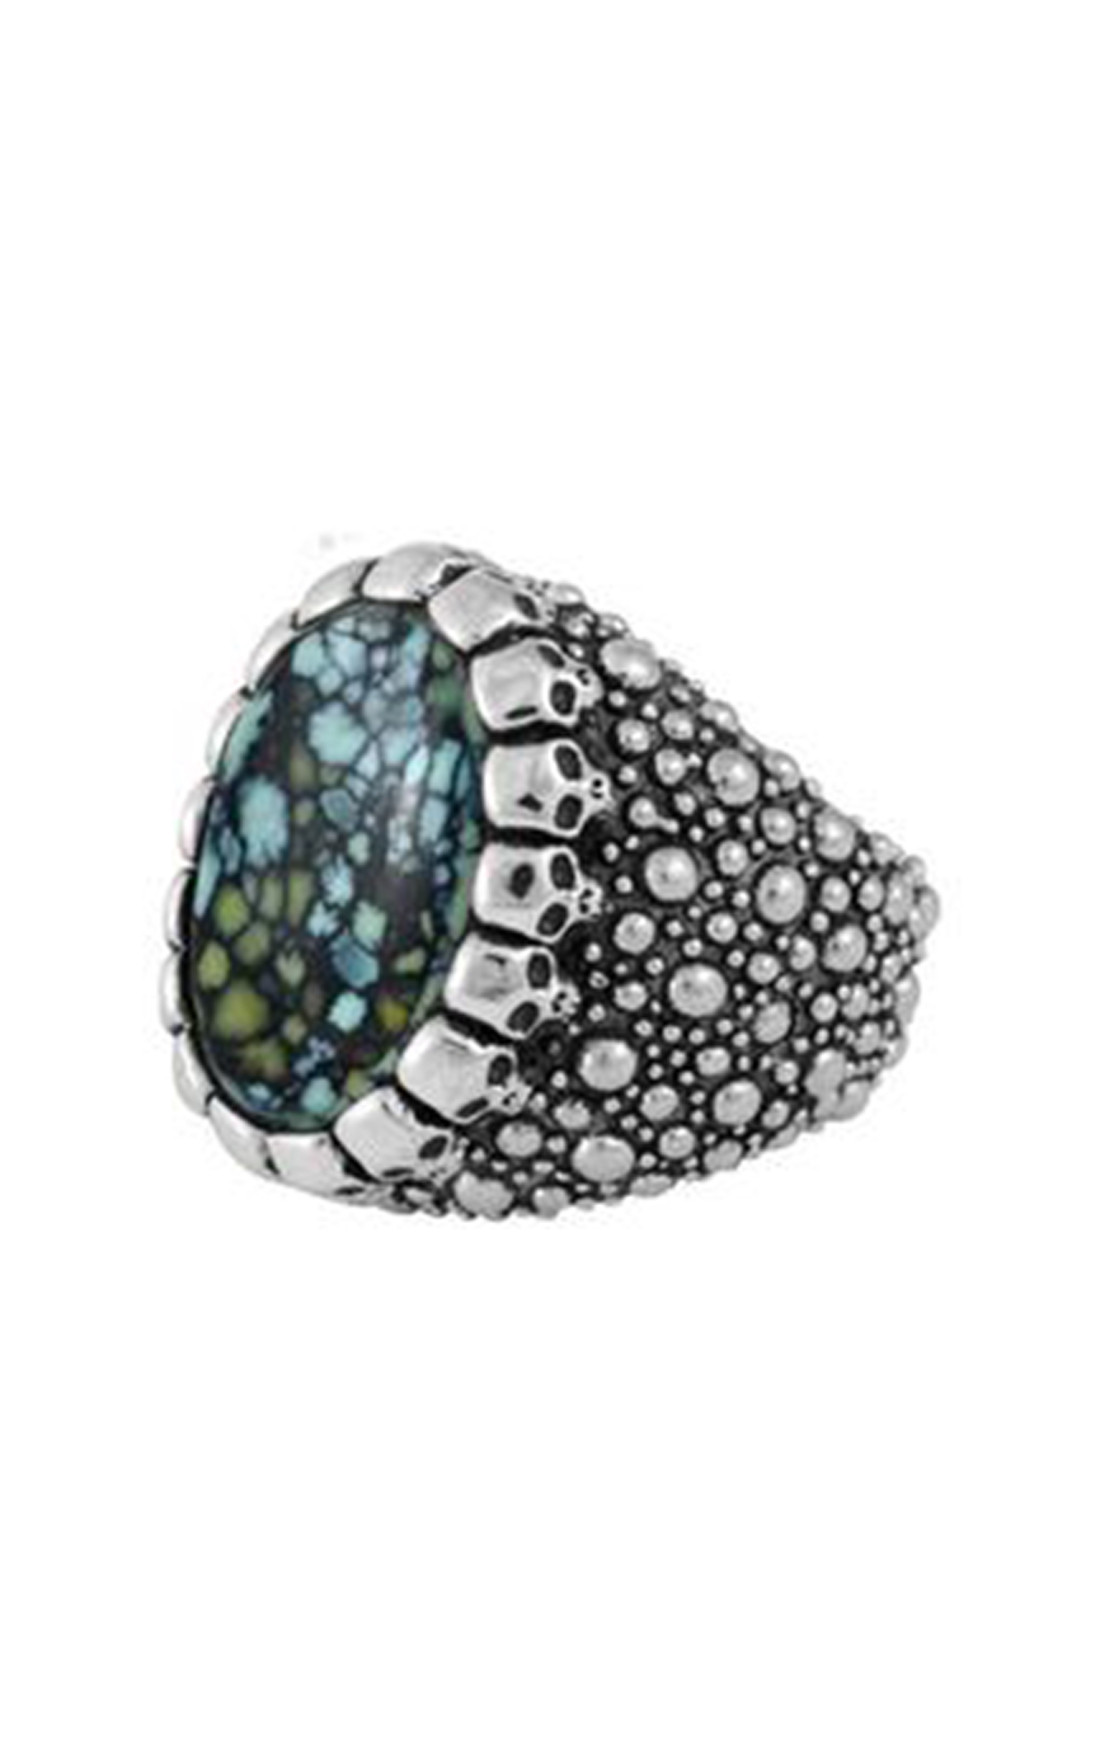 King Baby - Stingray Texture Ring with Top Hat Spotted Turquoise Cabochon in Skull Bezel (K20-5403)